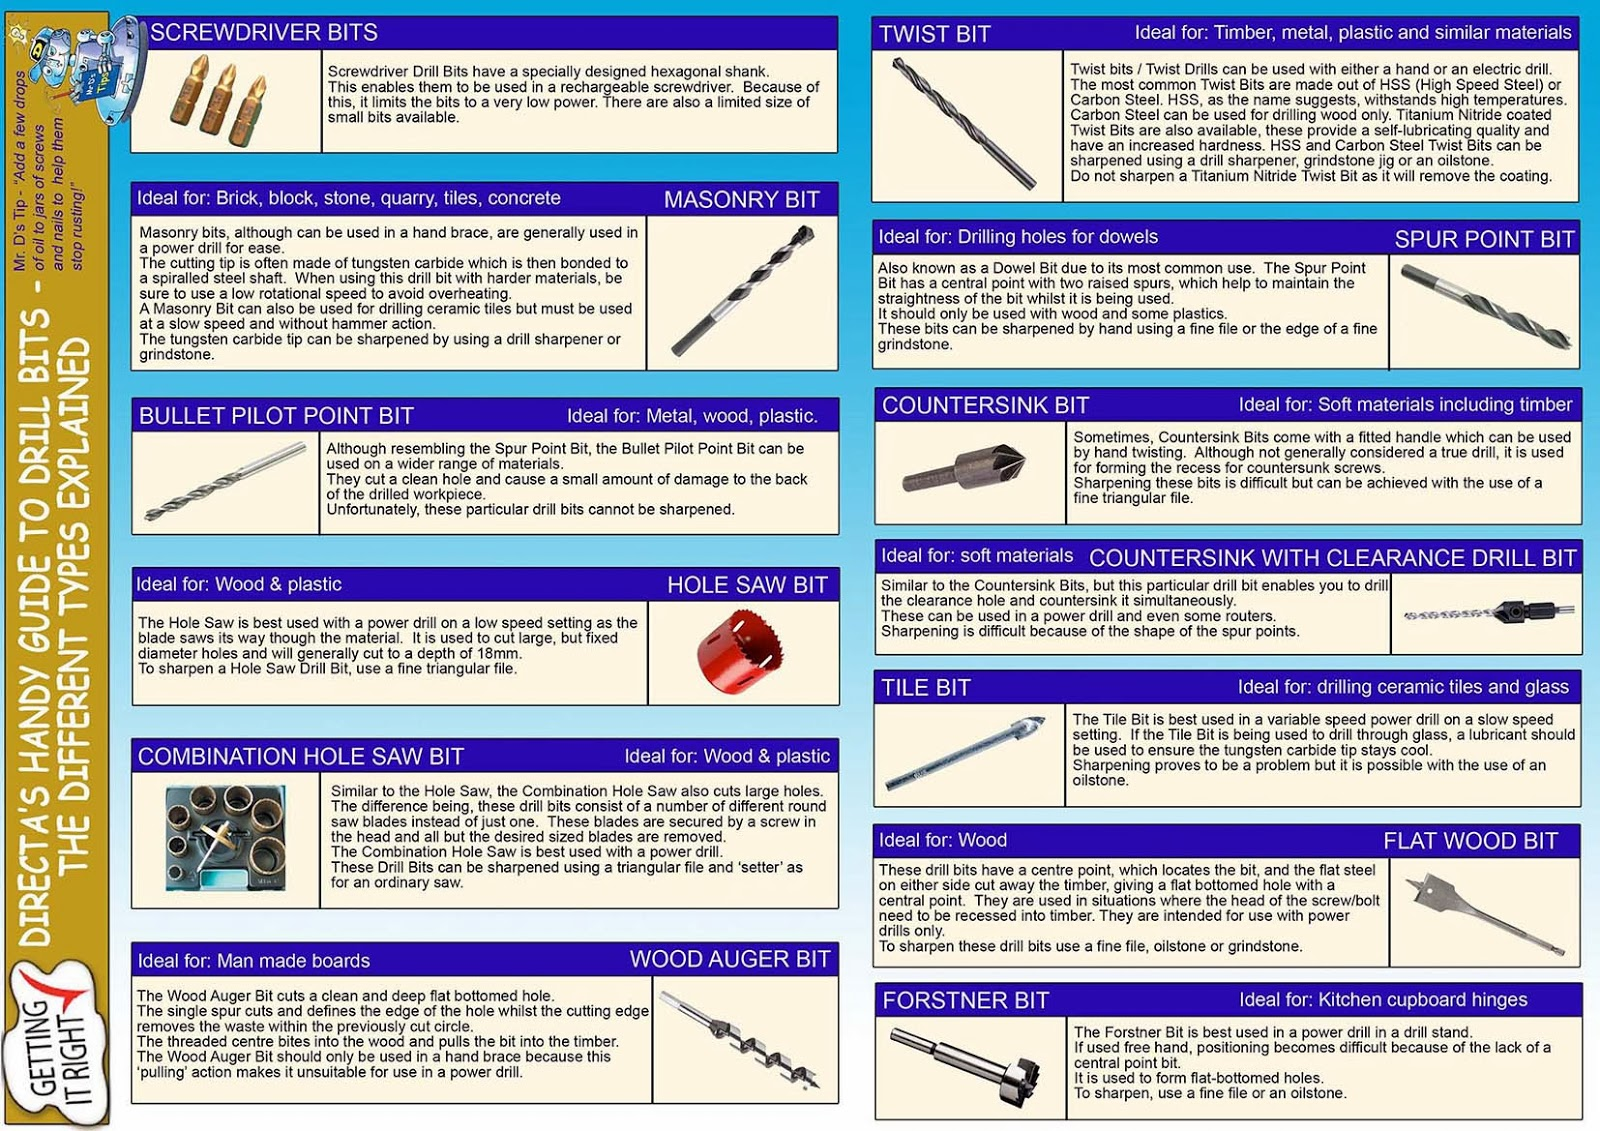 Take a look at Directa's handy guide to using the right drill bit http://www.directa.co.uk/site/scripts/products.php?category_id=1021